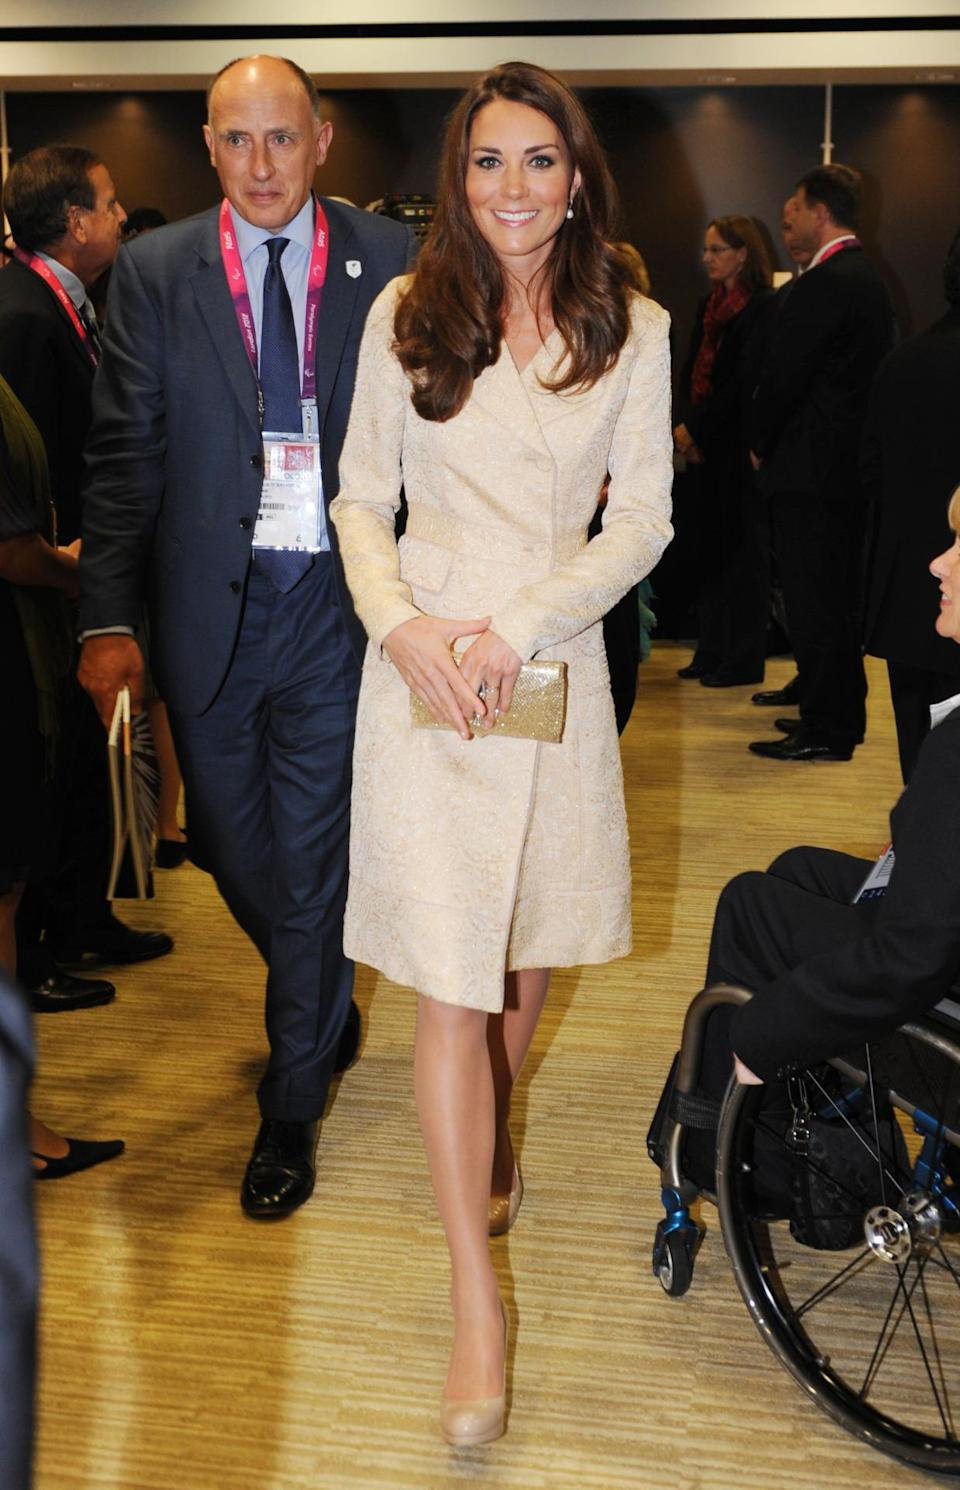 <p>Kate donned a champagne brocade coat by Day Birger et Mikkelsen for the opening ceremony of the 2012 Paralympics. She carried a gold sequinned Wilbur and Gussie clutch and completed the look with her trust L.K. Bennett pumps. </p><p><i>[Photo: PA]</i></p>